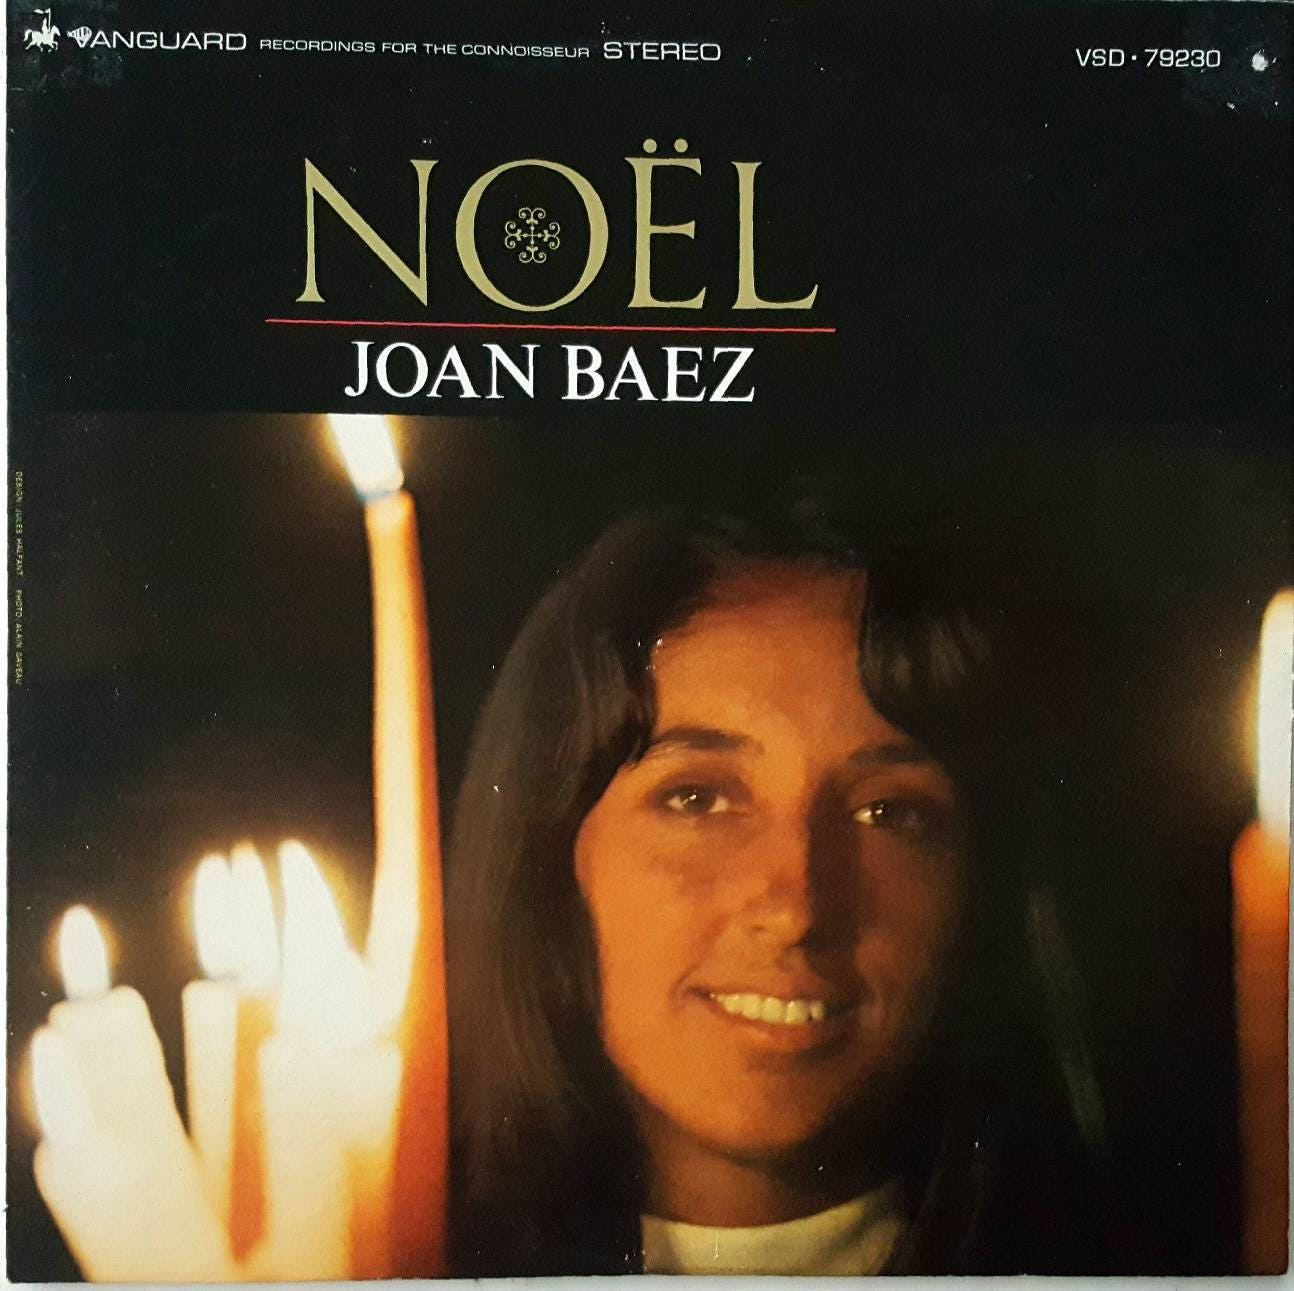 Vintage Christmas album: Noel by Joan Baez. | Etsy